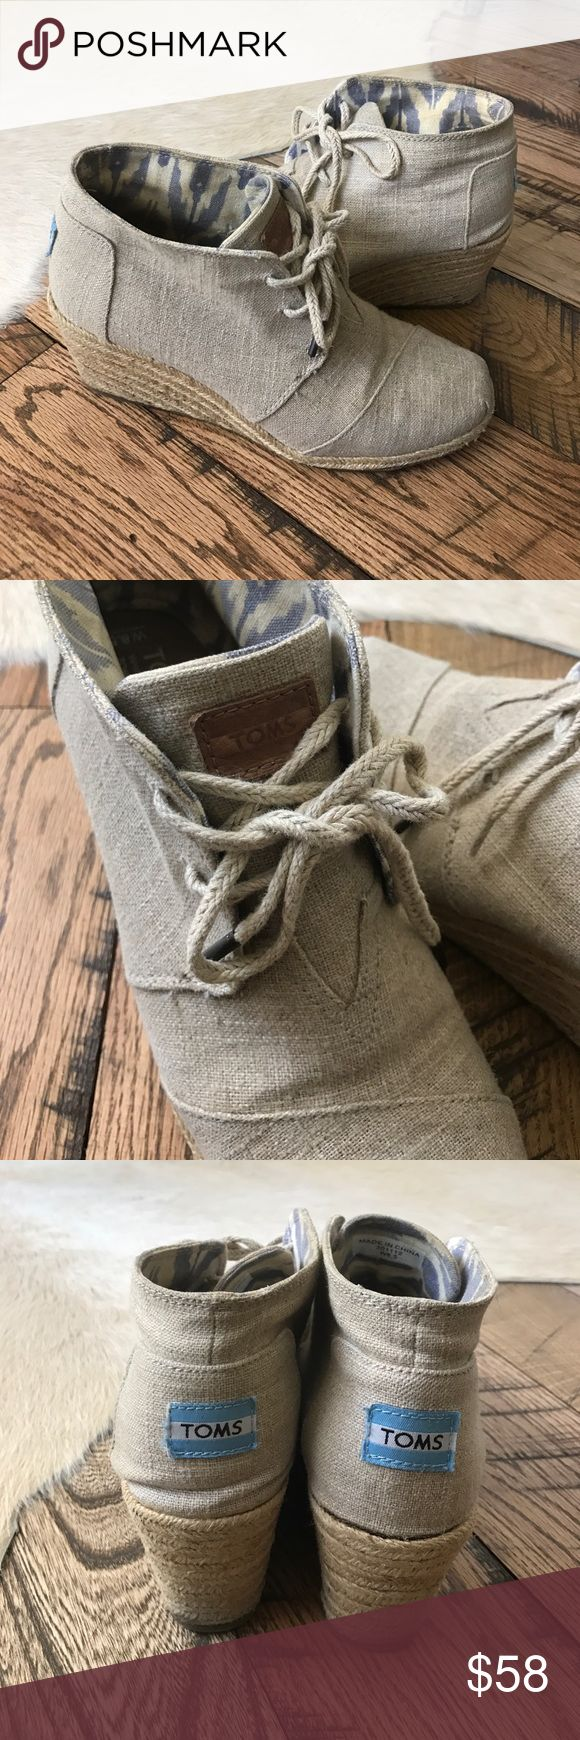 Toms-Desert Wedge in Natural Burlap Sz 8.5 TOMS Desert Wedges in Natural Burlap-this color sold out everywhere online! Extremely comfortable! Very gently used and in great used condition. Size 8.5 TOMS Shoes Wedges